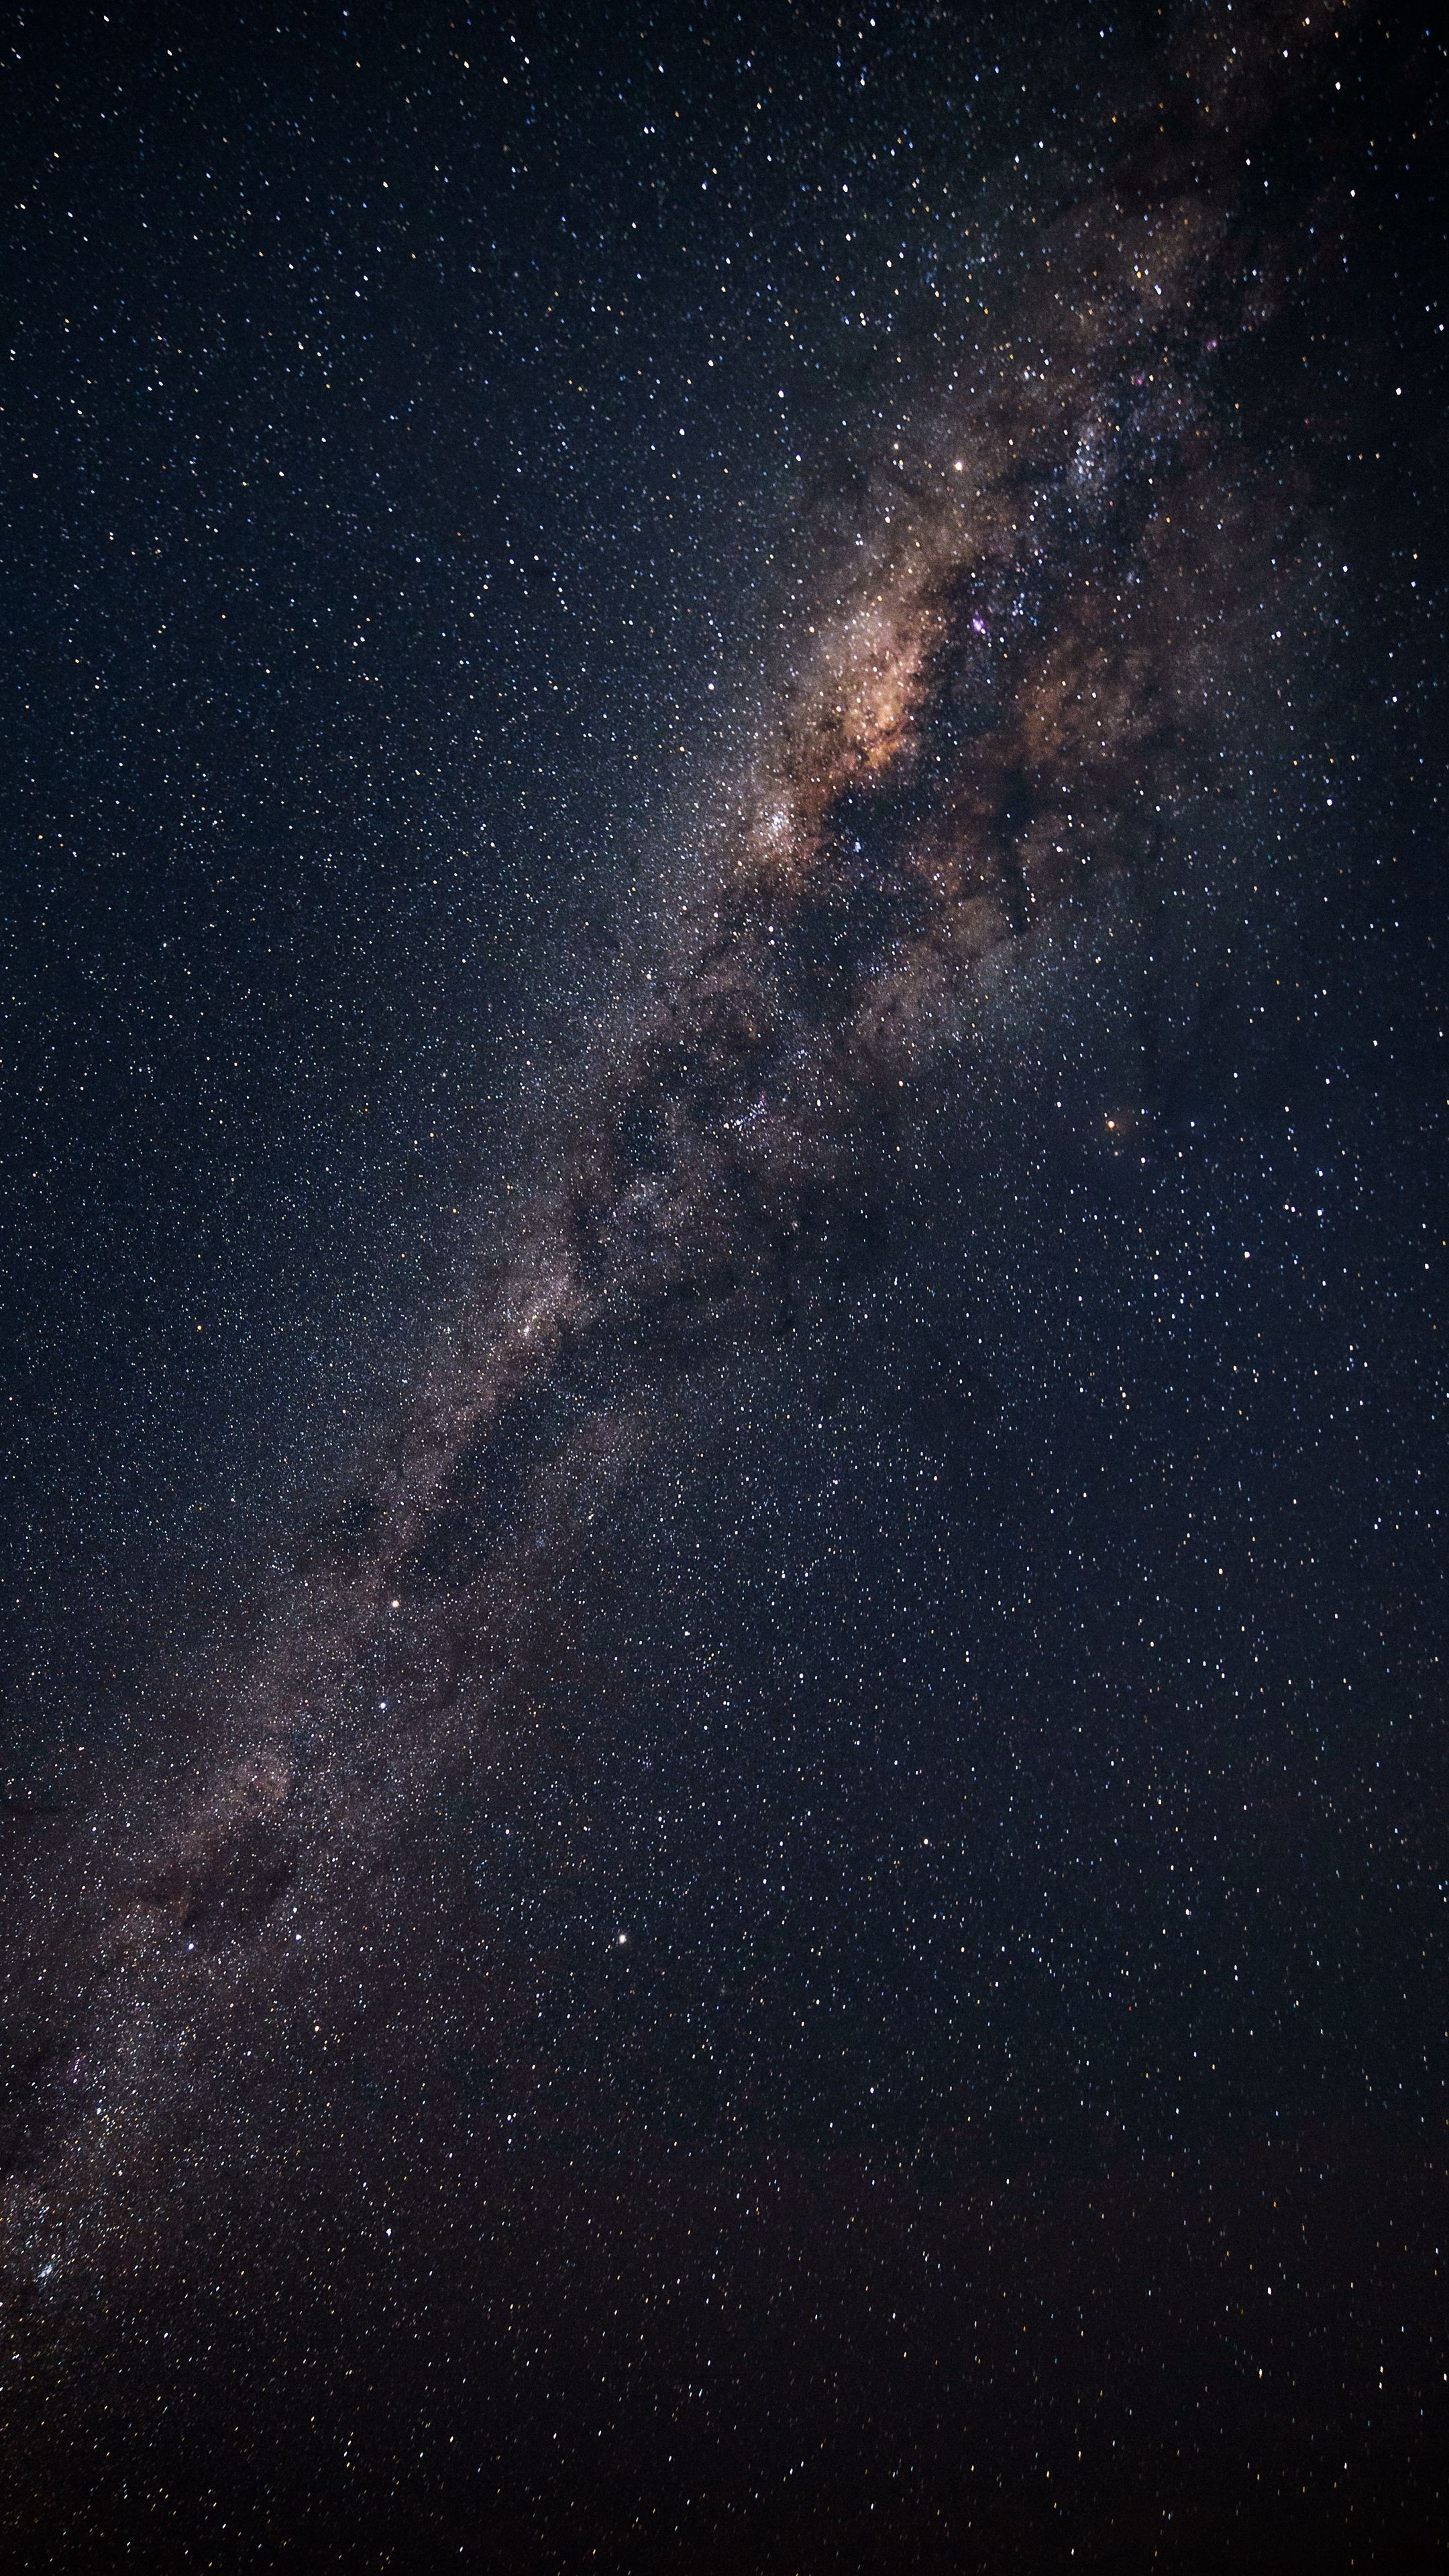 2160x3840 Wallpapers starry sky, milky way, astronomy, galaxy